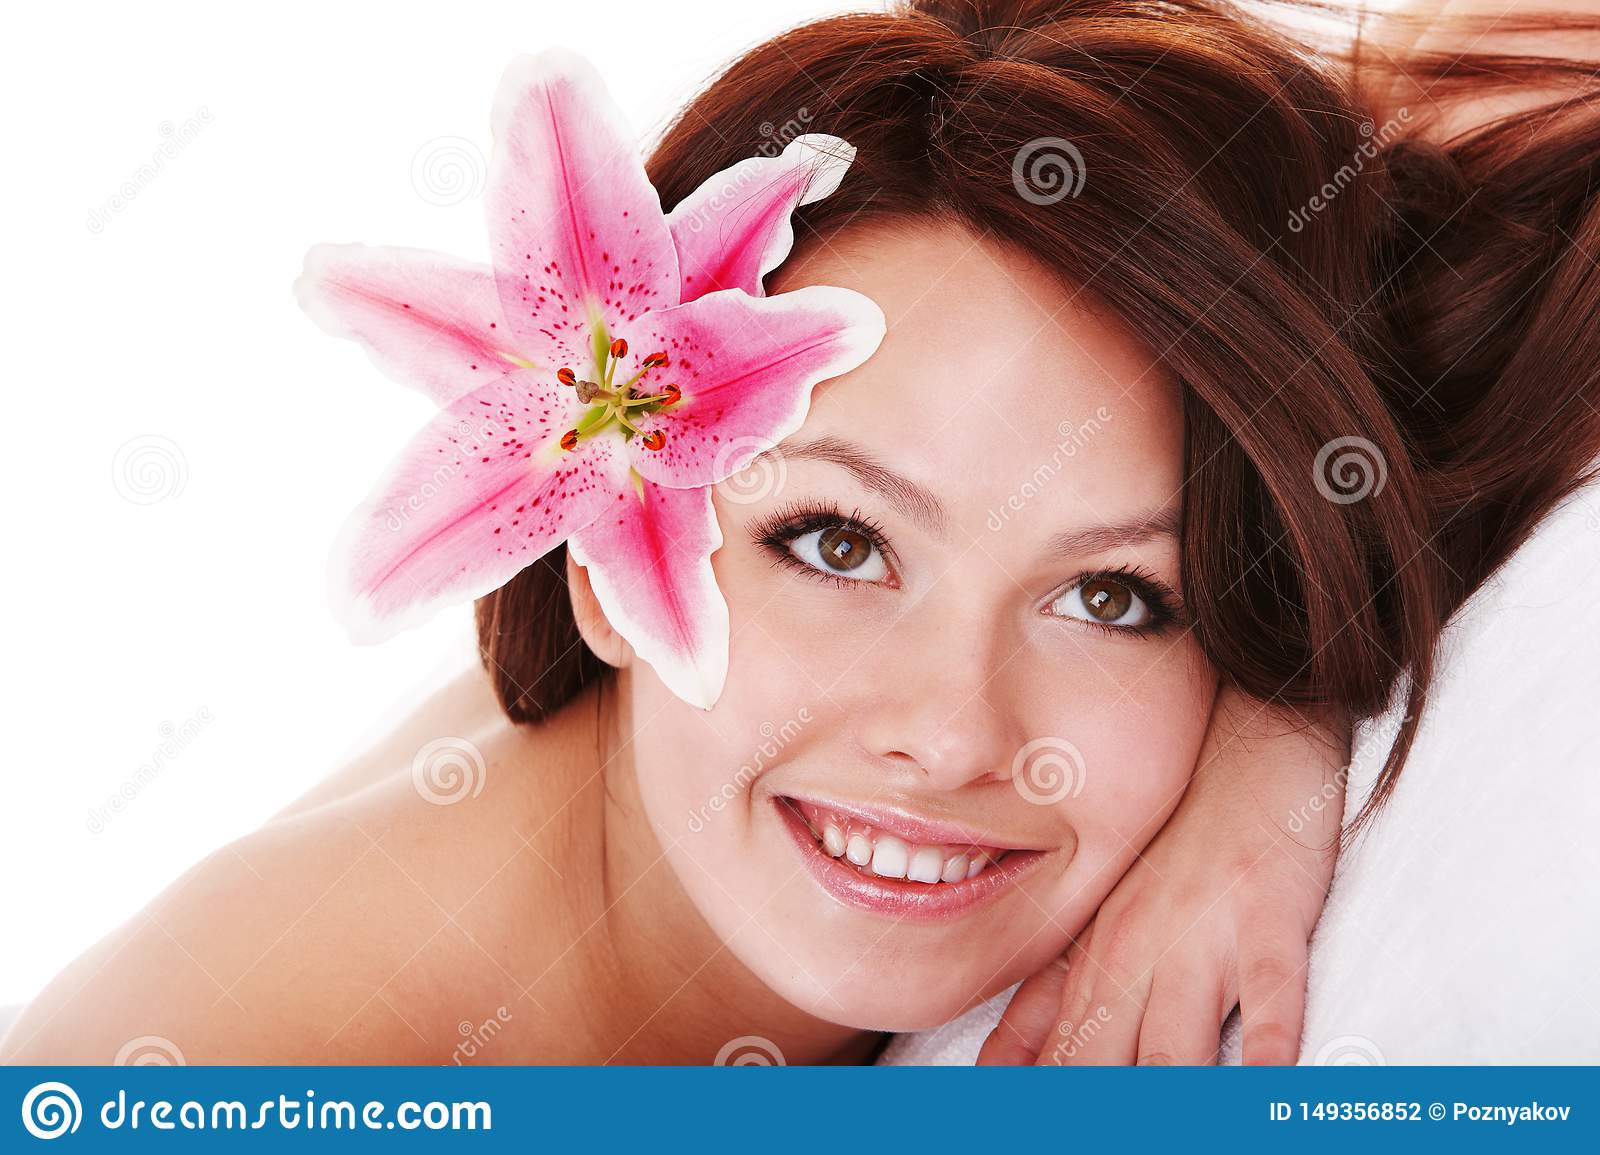 Girl with flower in hair on massge in spa salon .